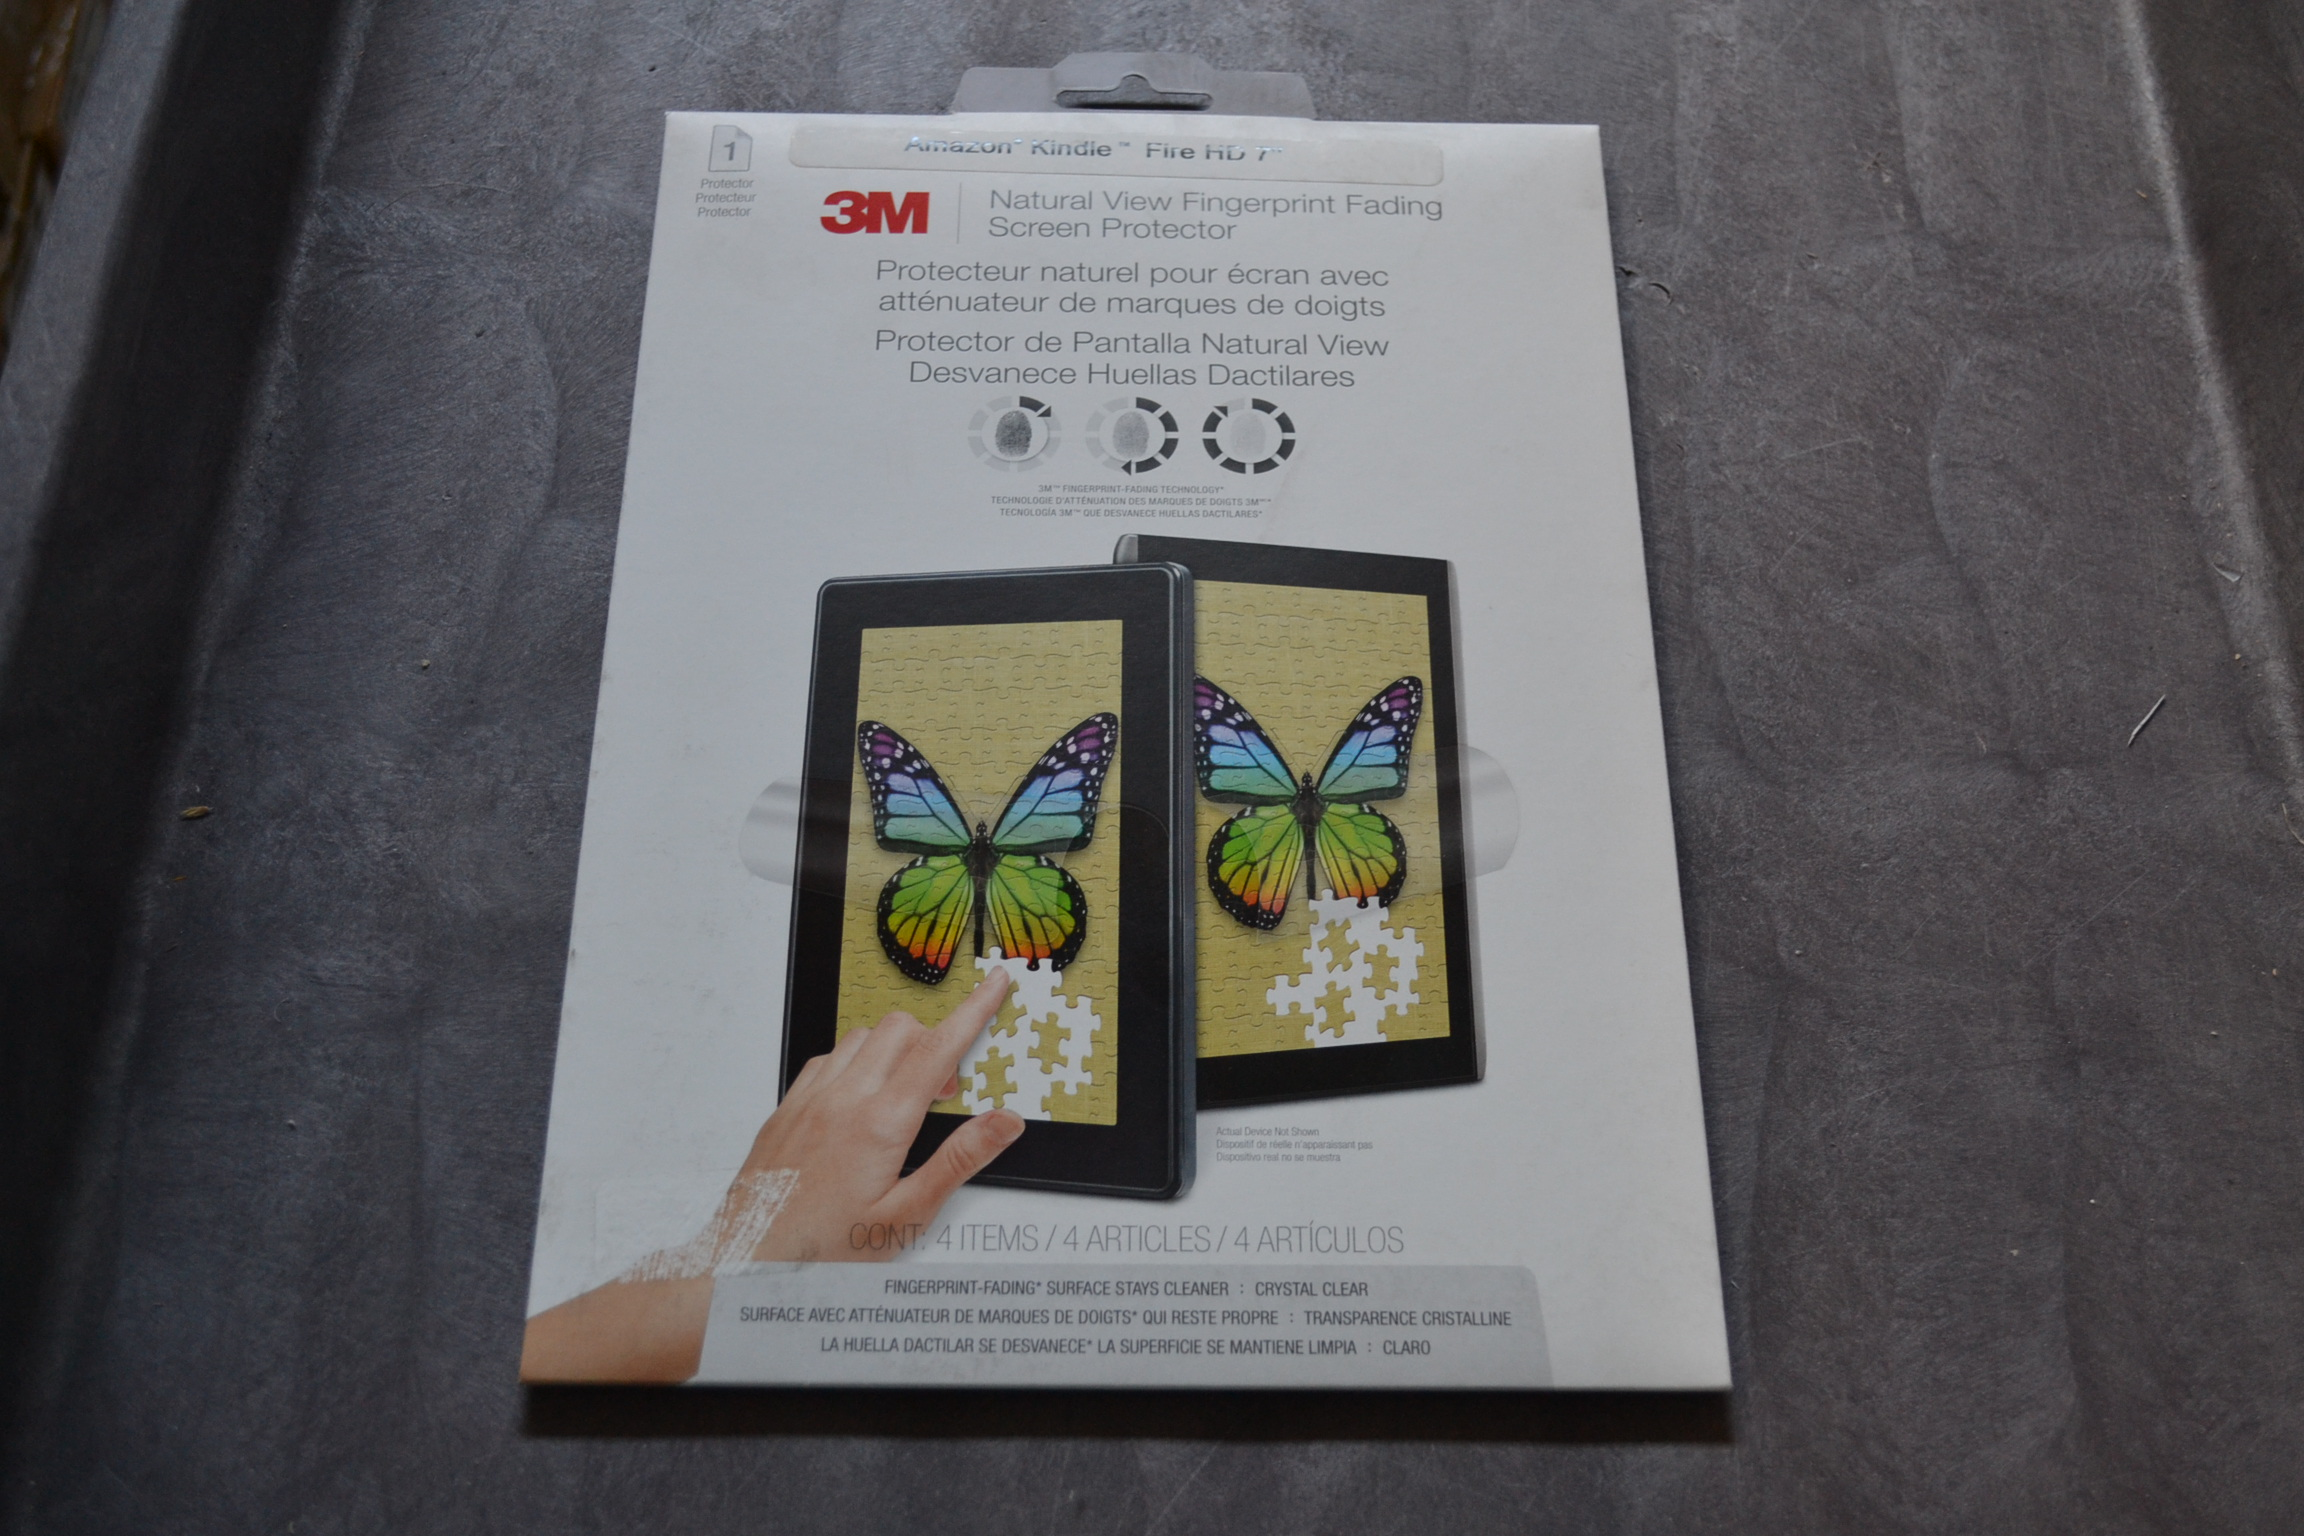 3M NVFF828502? Natural View Fingerprint Fading Screen Protector Amazon